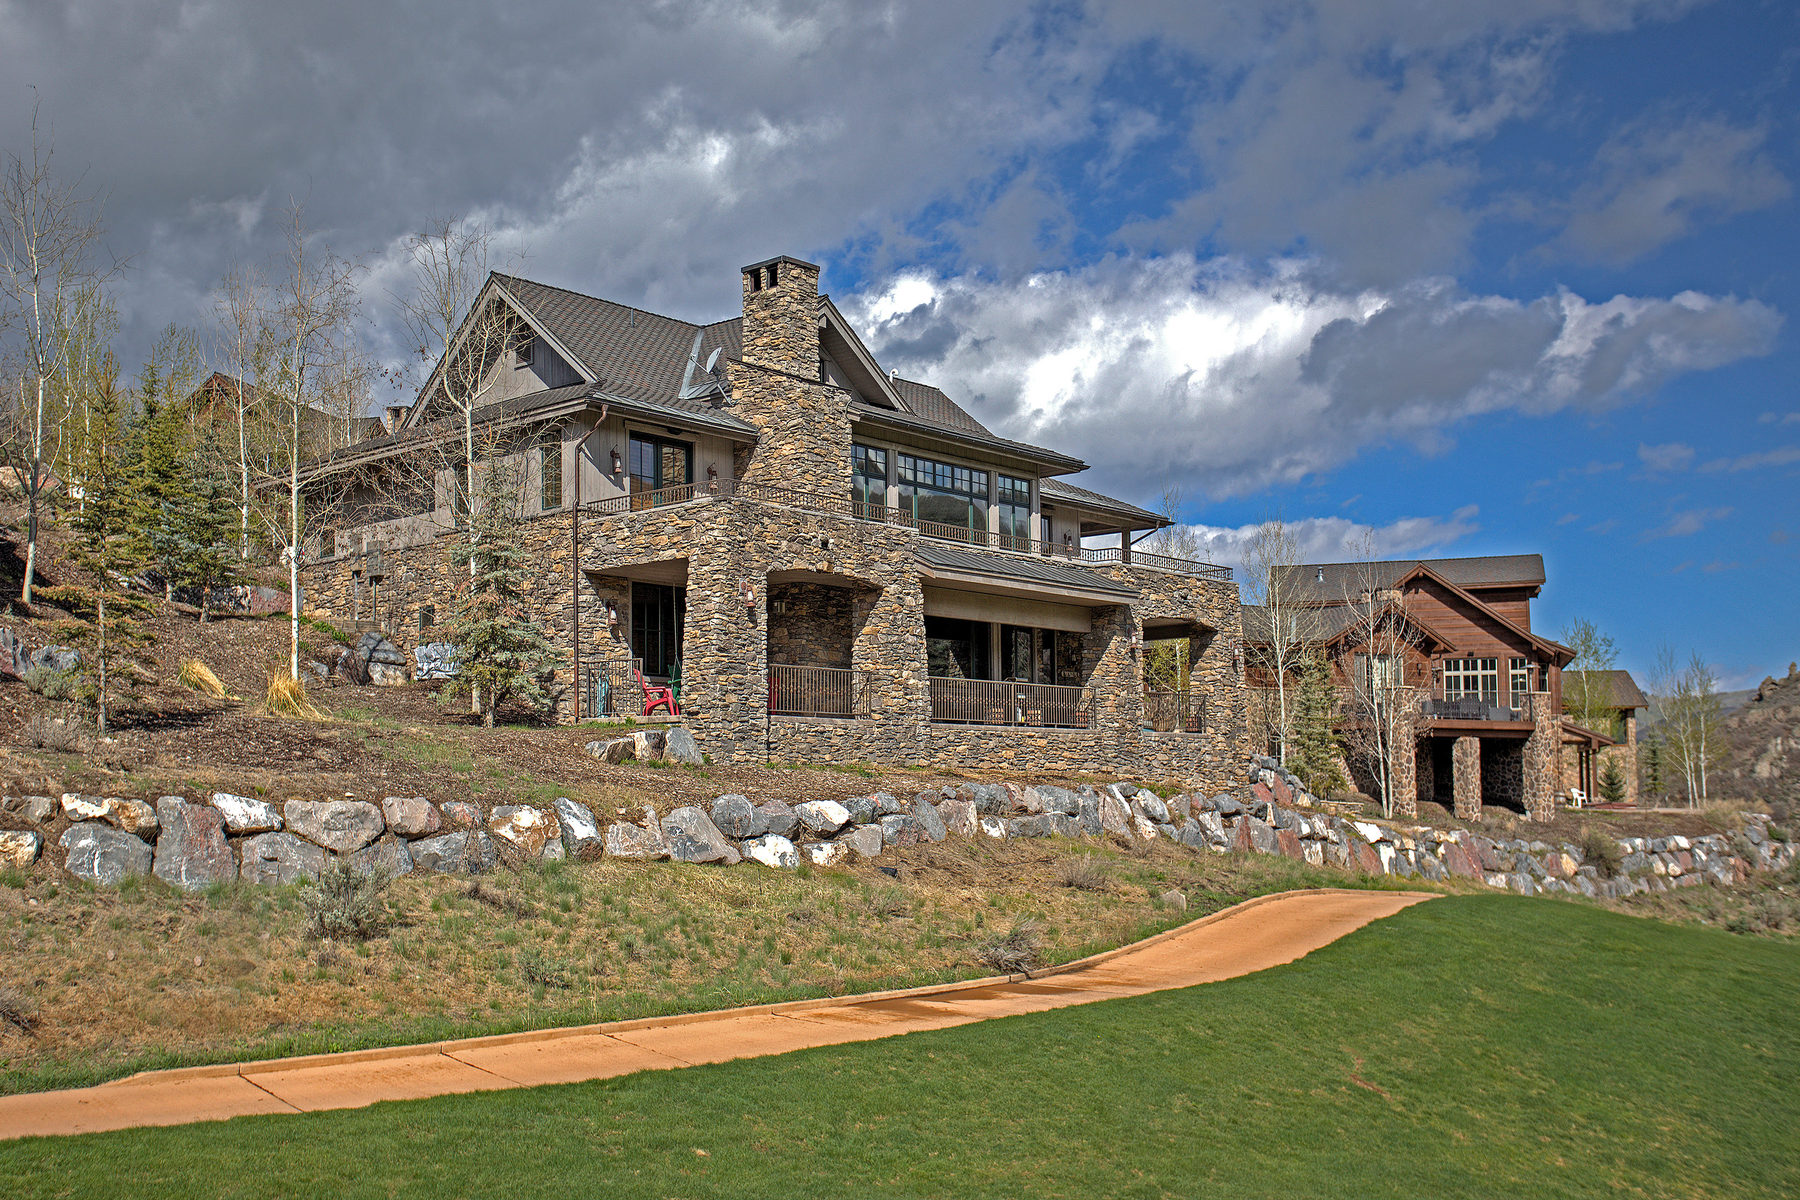 Casa Unifamiliar por un Venta en Mountain & Western Elegance Cabin 8769 Ranch Club Ct Lot 14 Park City, Utah 84098 Estados Unidos